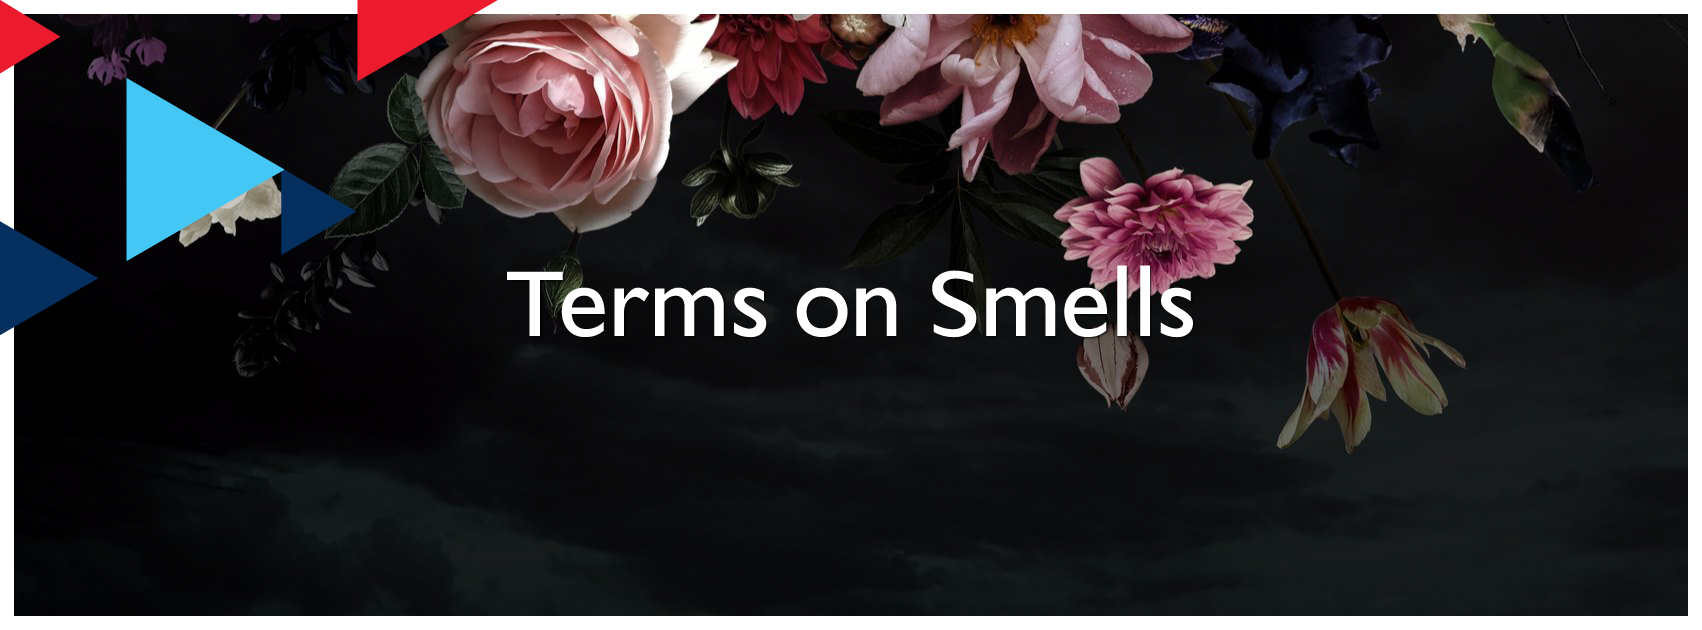 Terms on Smells